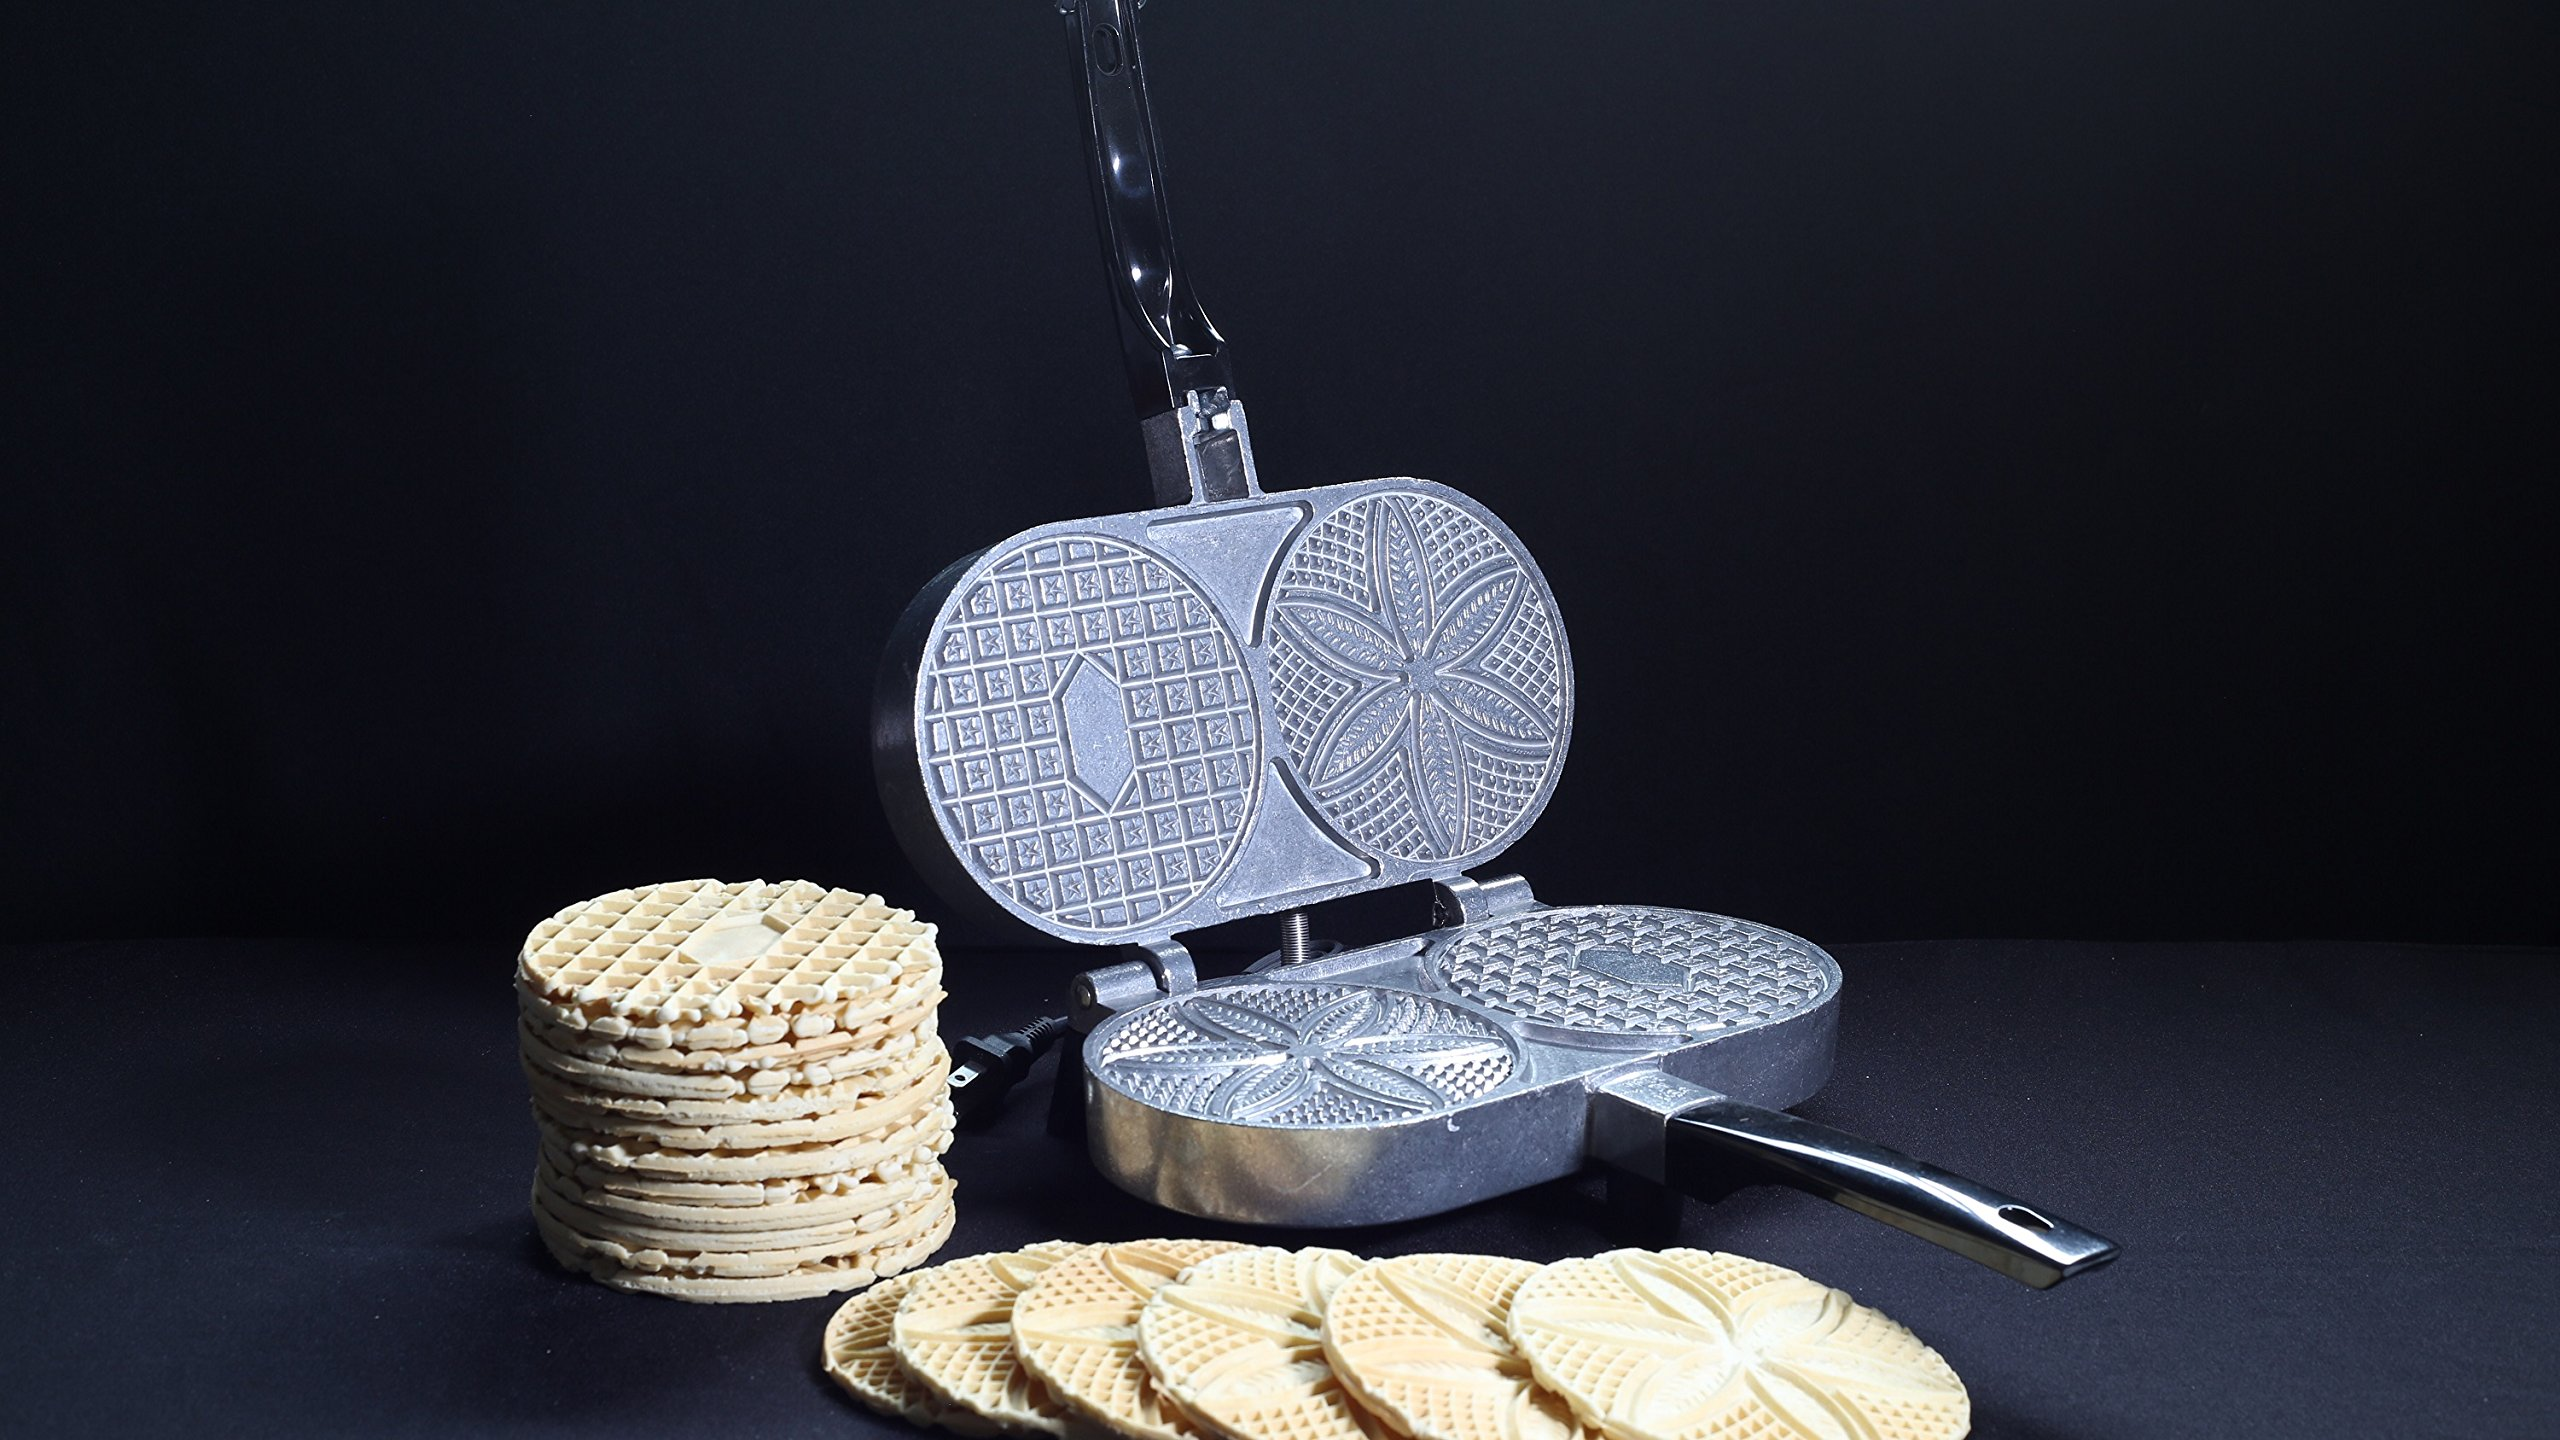 Palmer Pizzelle Maker - Made in USA, Garden, Lawn, Maintenance